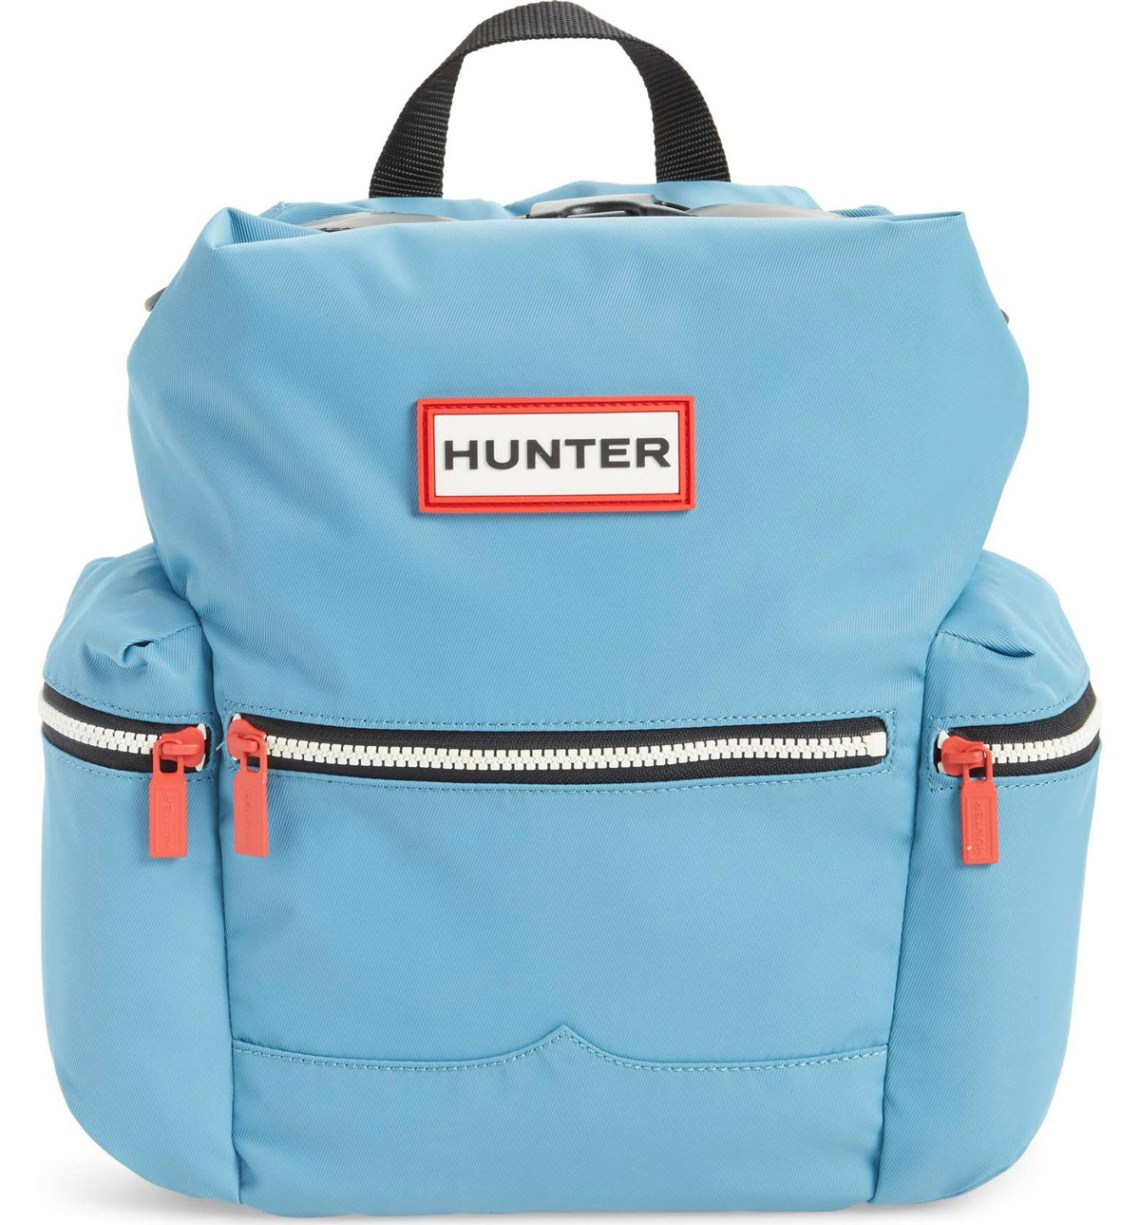 Fitness Gift Idea: Hunter Gym Bag in Baby Blue